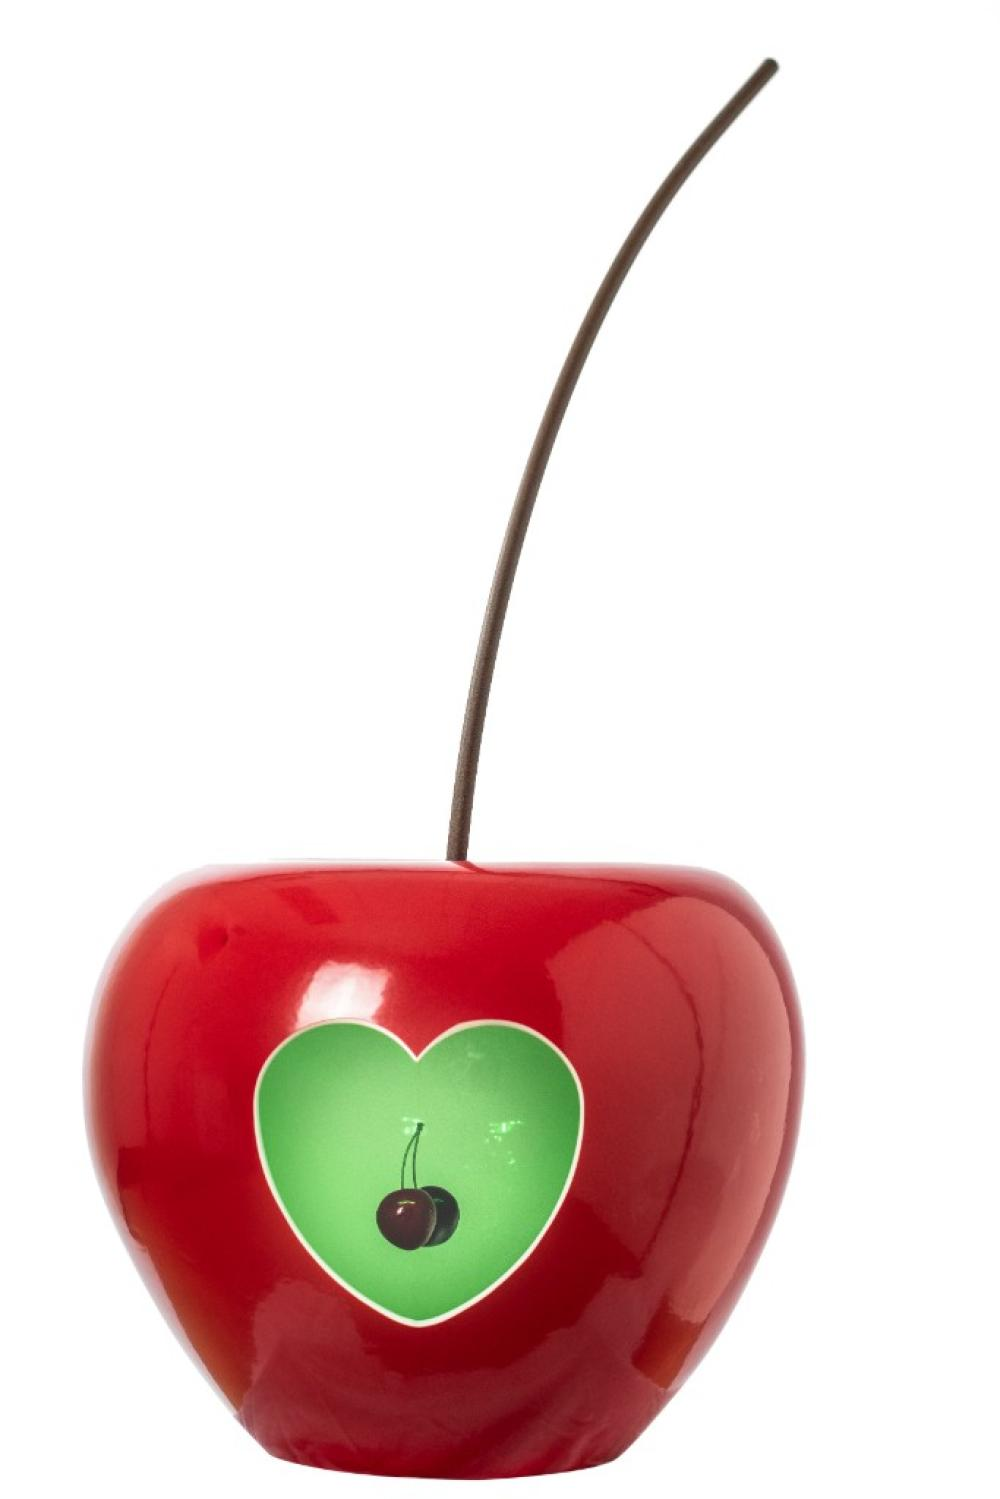 Charity Auction (No Premium): 20 Cherries - 20 Artists - A realization of Rotary Club Aalter